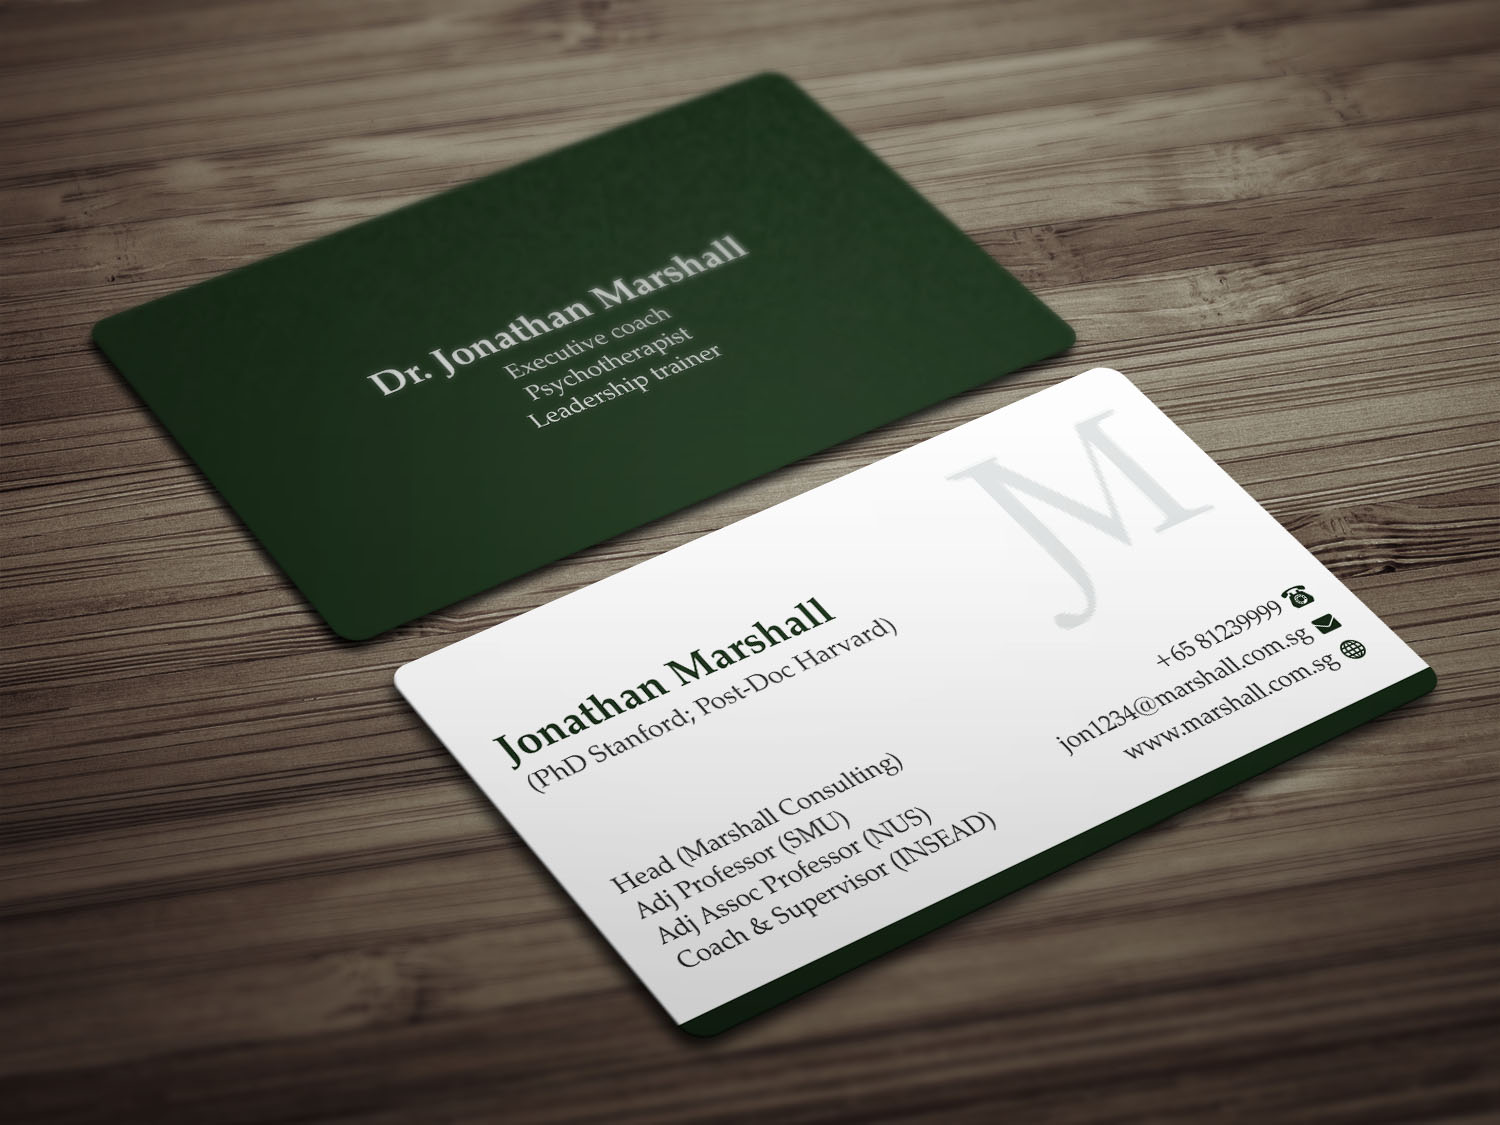 172 Upmarket Business Card Designs | Psychology Business Card Design ...